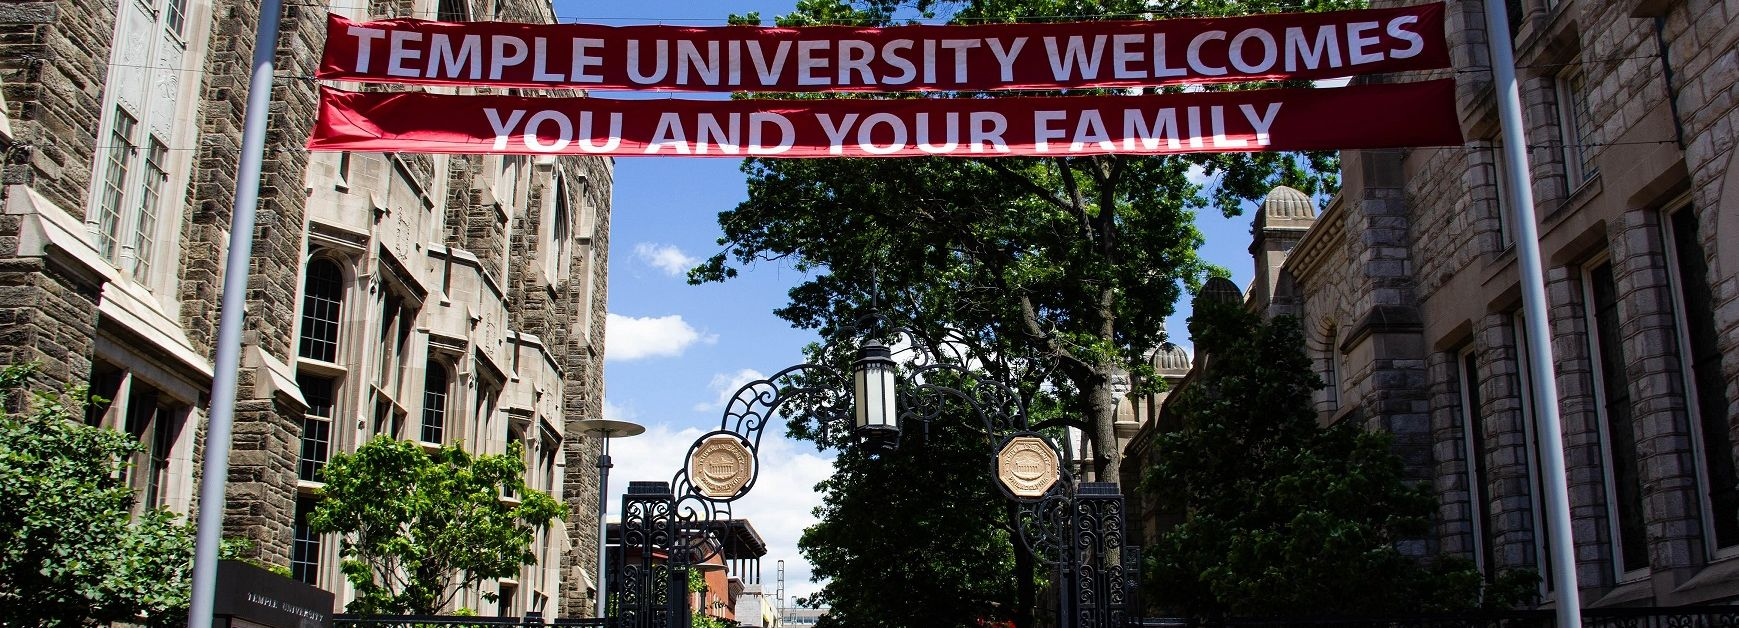 Temple welcome sign